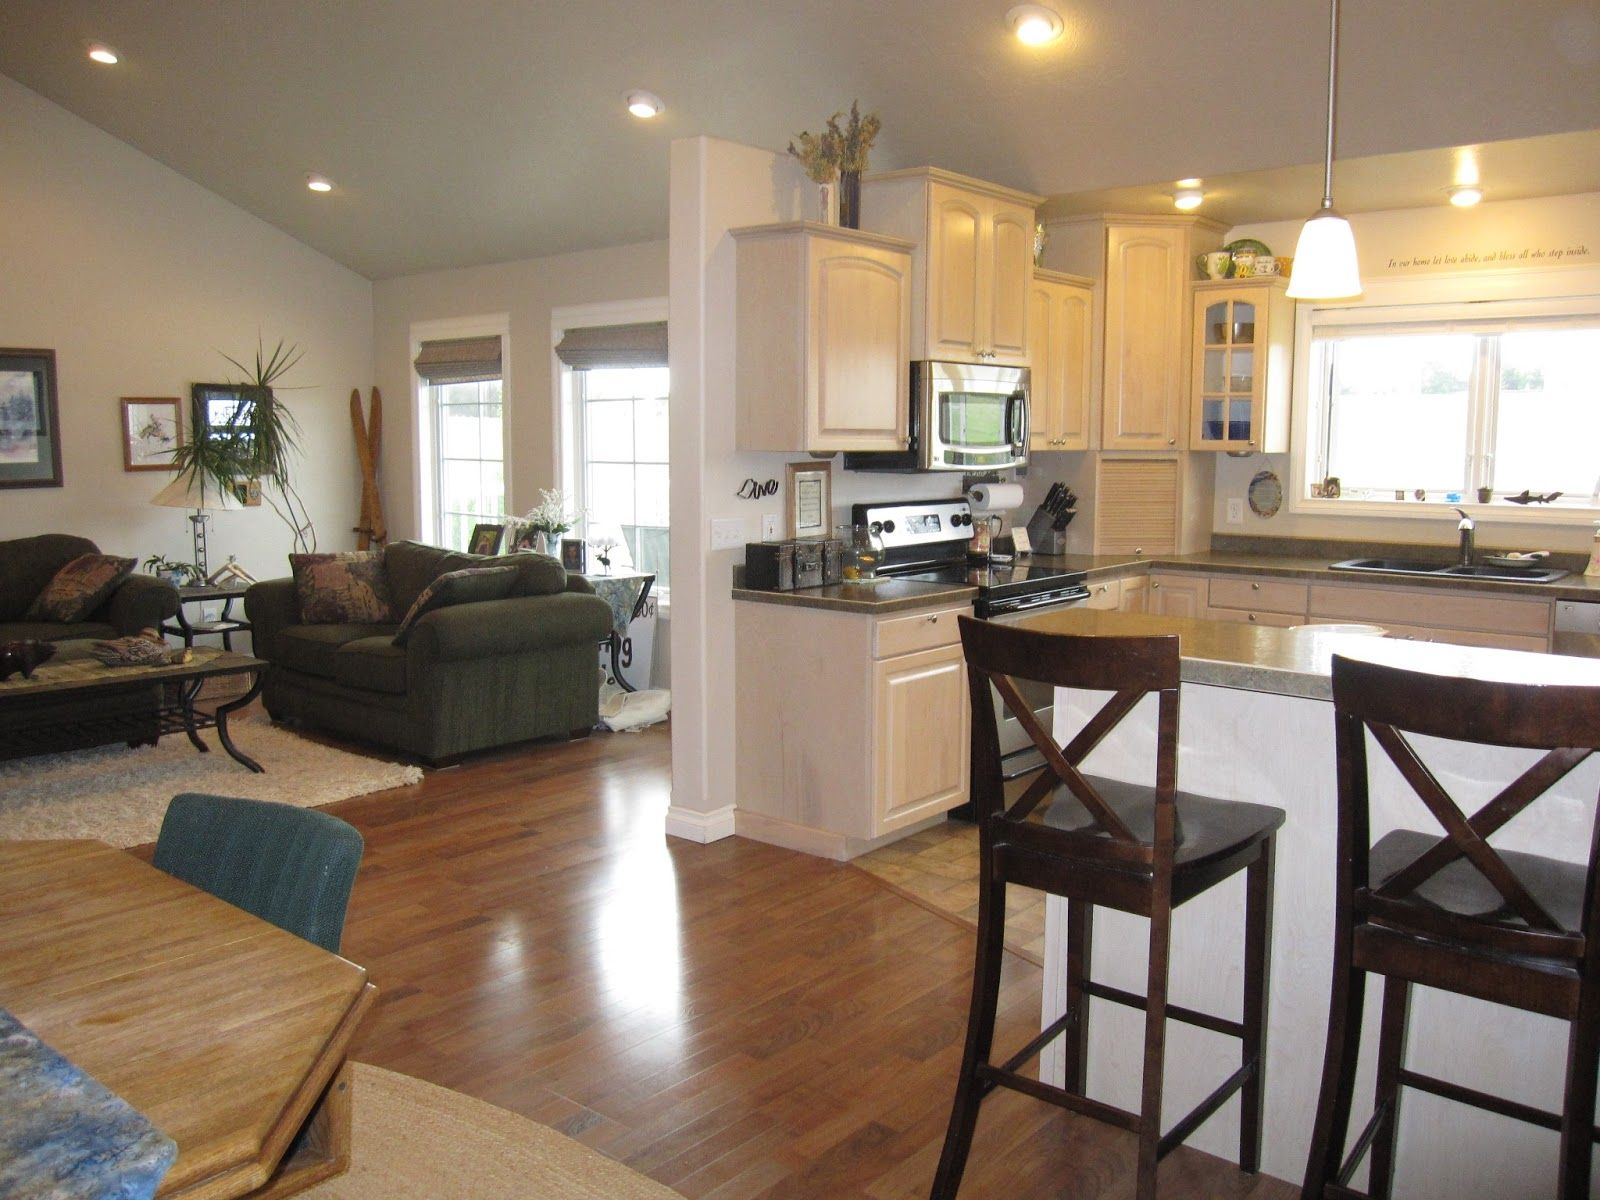 Small Open Kitchen And Living Room Floor Plans Open Concept Kitchen Living Room Open Kitchen And Living Room Open Plan Kitchen Living Room